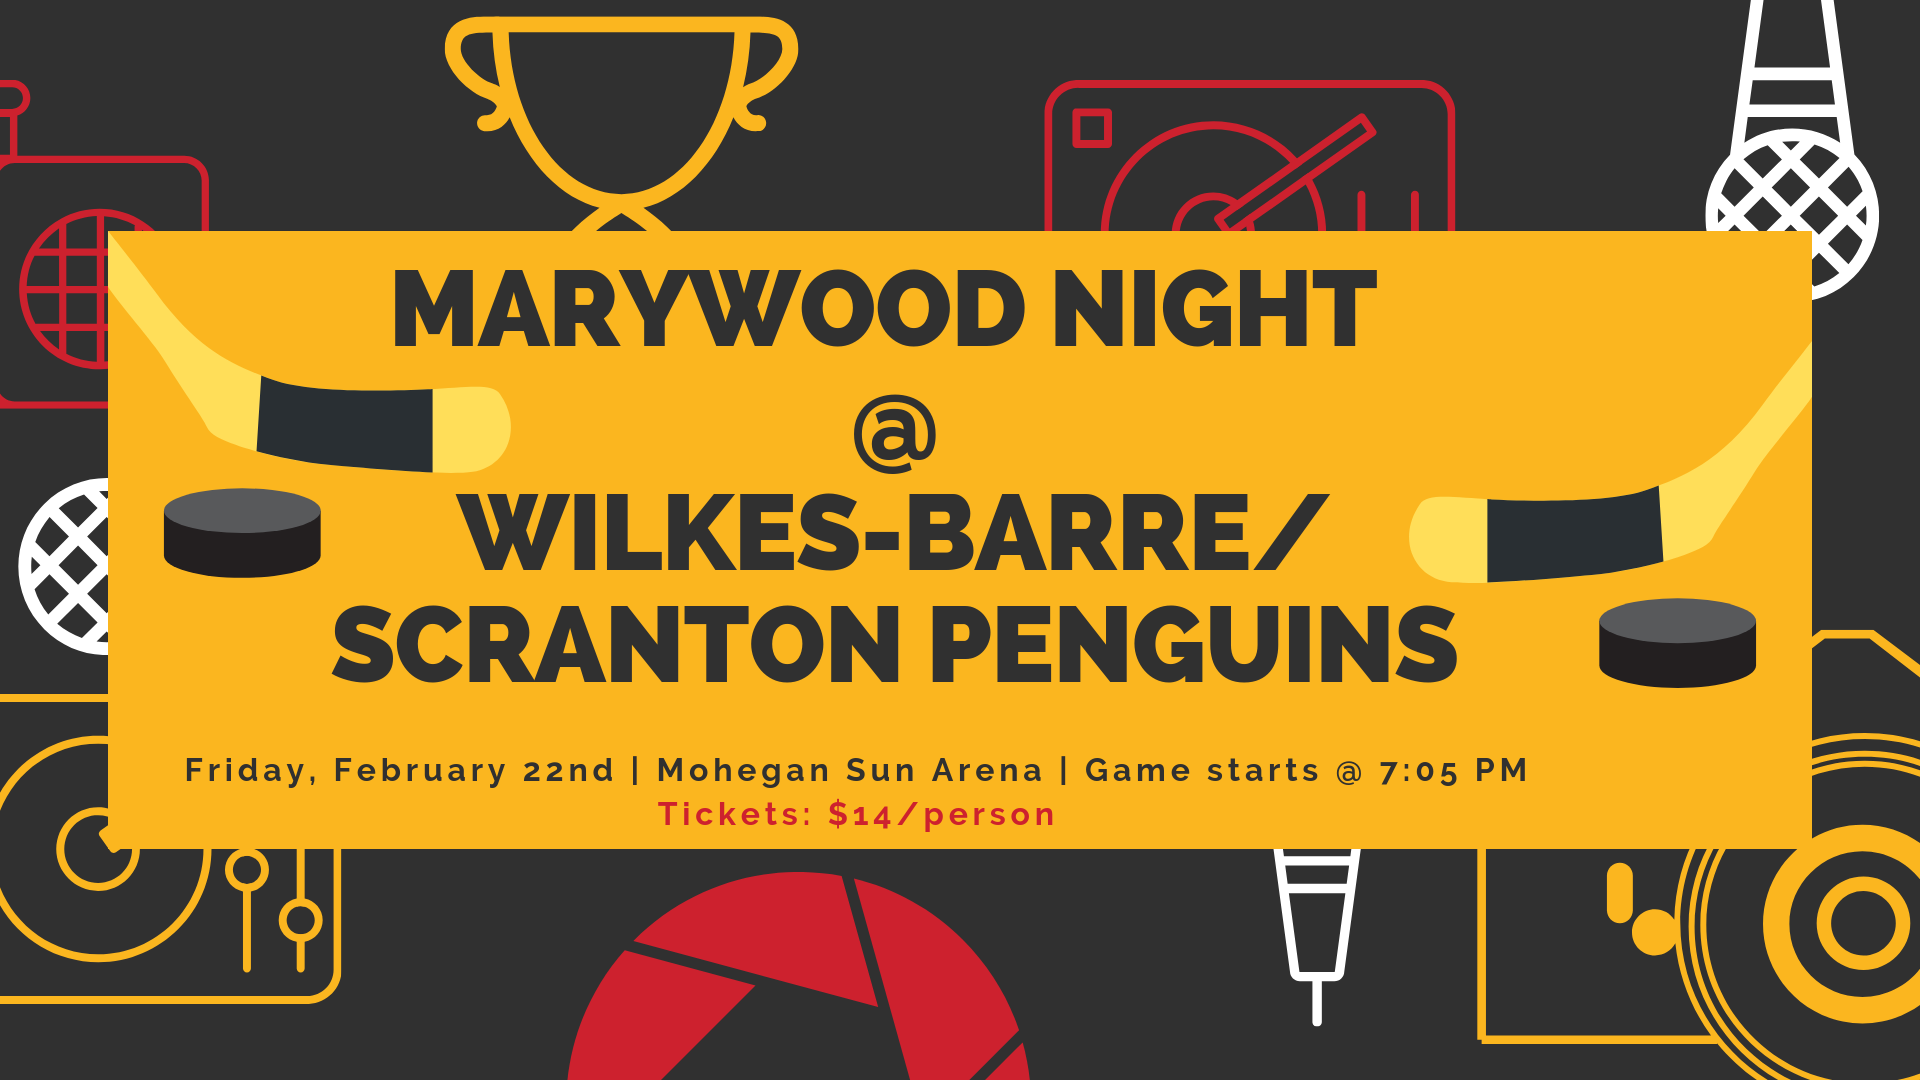 Marywood Night at WBS Penguins - Friday, February 22nd (Game starts at 7:05 p.m.)